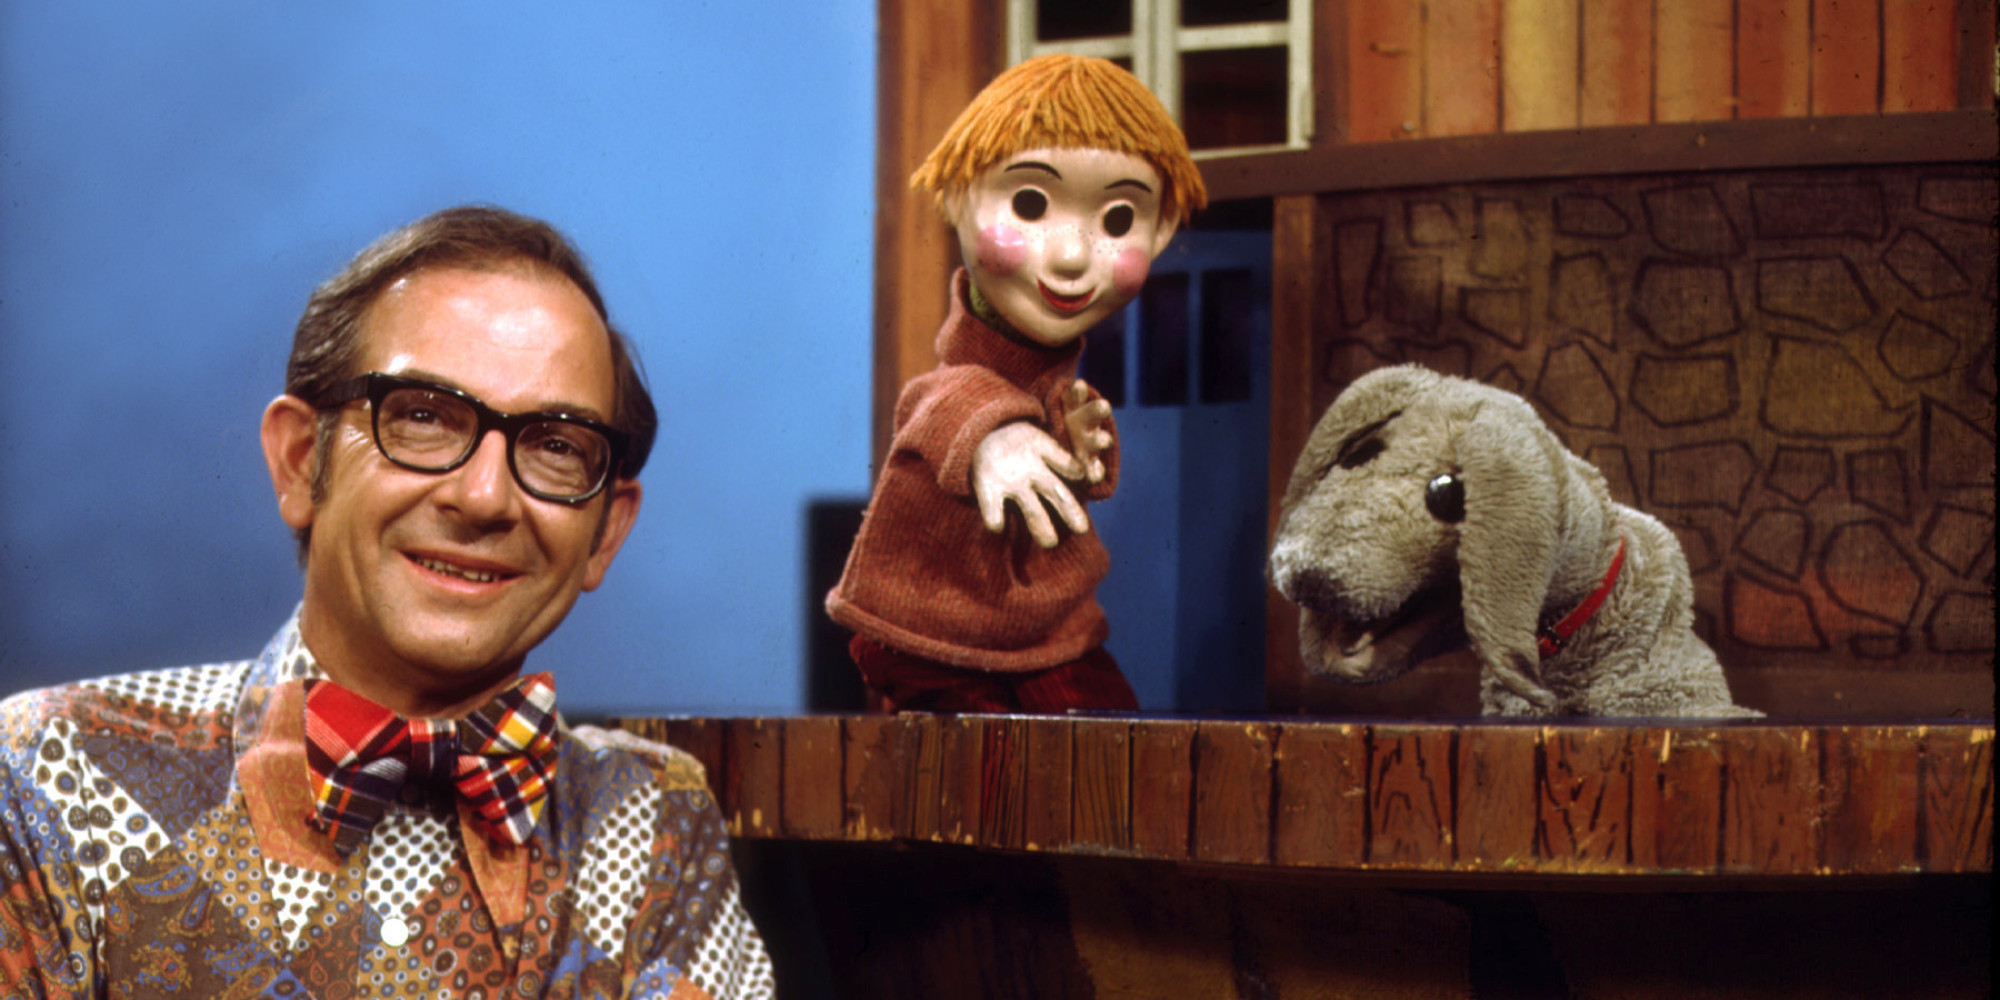 mr Dressup Drawing 8 Things mr Dressup Taught